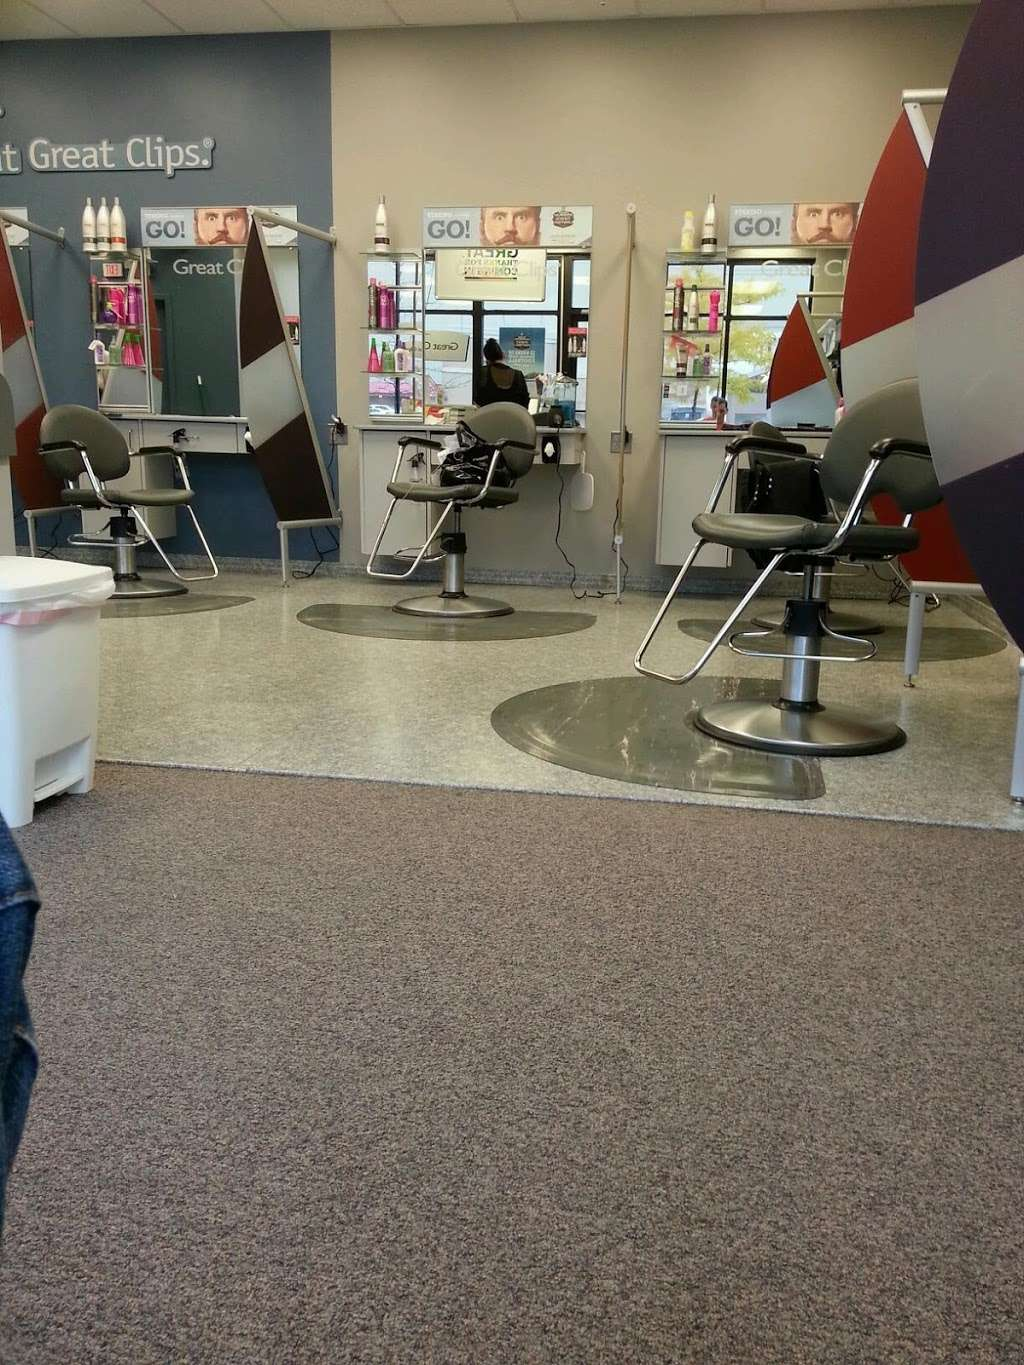 Great Clips - hair care  | Photo 7 of 9 | Address: 1475 Old York Rd, Abington, PA 19001, USA | Phone: (215) 881-9570